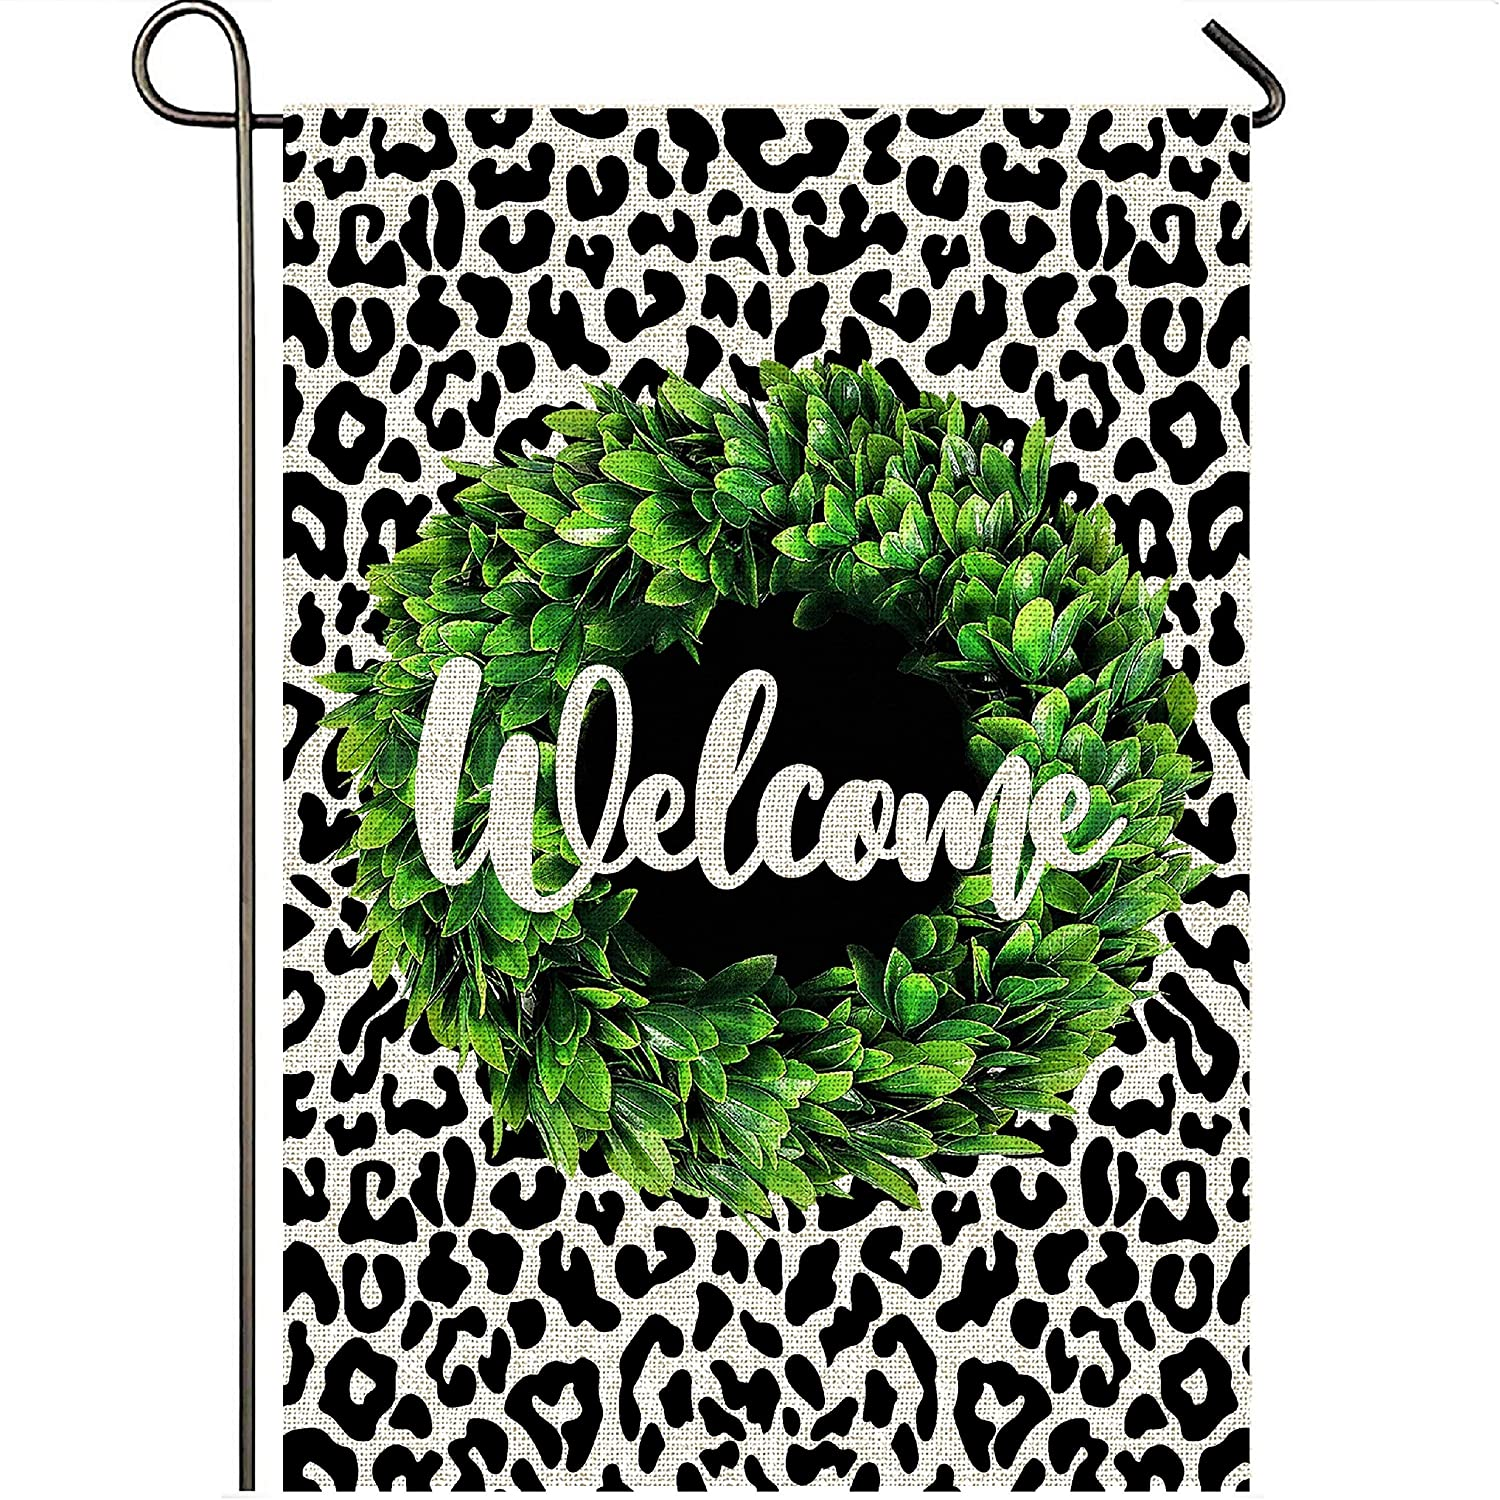 Mogarden Welcome Garden Flag, Double Sided 12.5 x 18 Inch Leopard Design, Premium Burlap Small Decorative Yard Flag for All Seasons for Outside